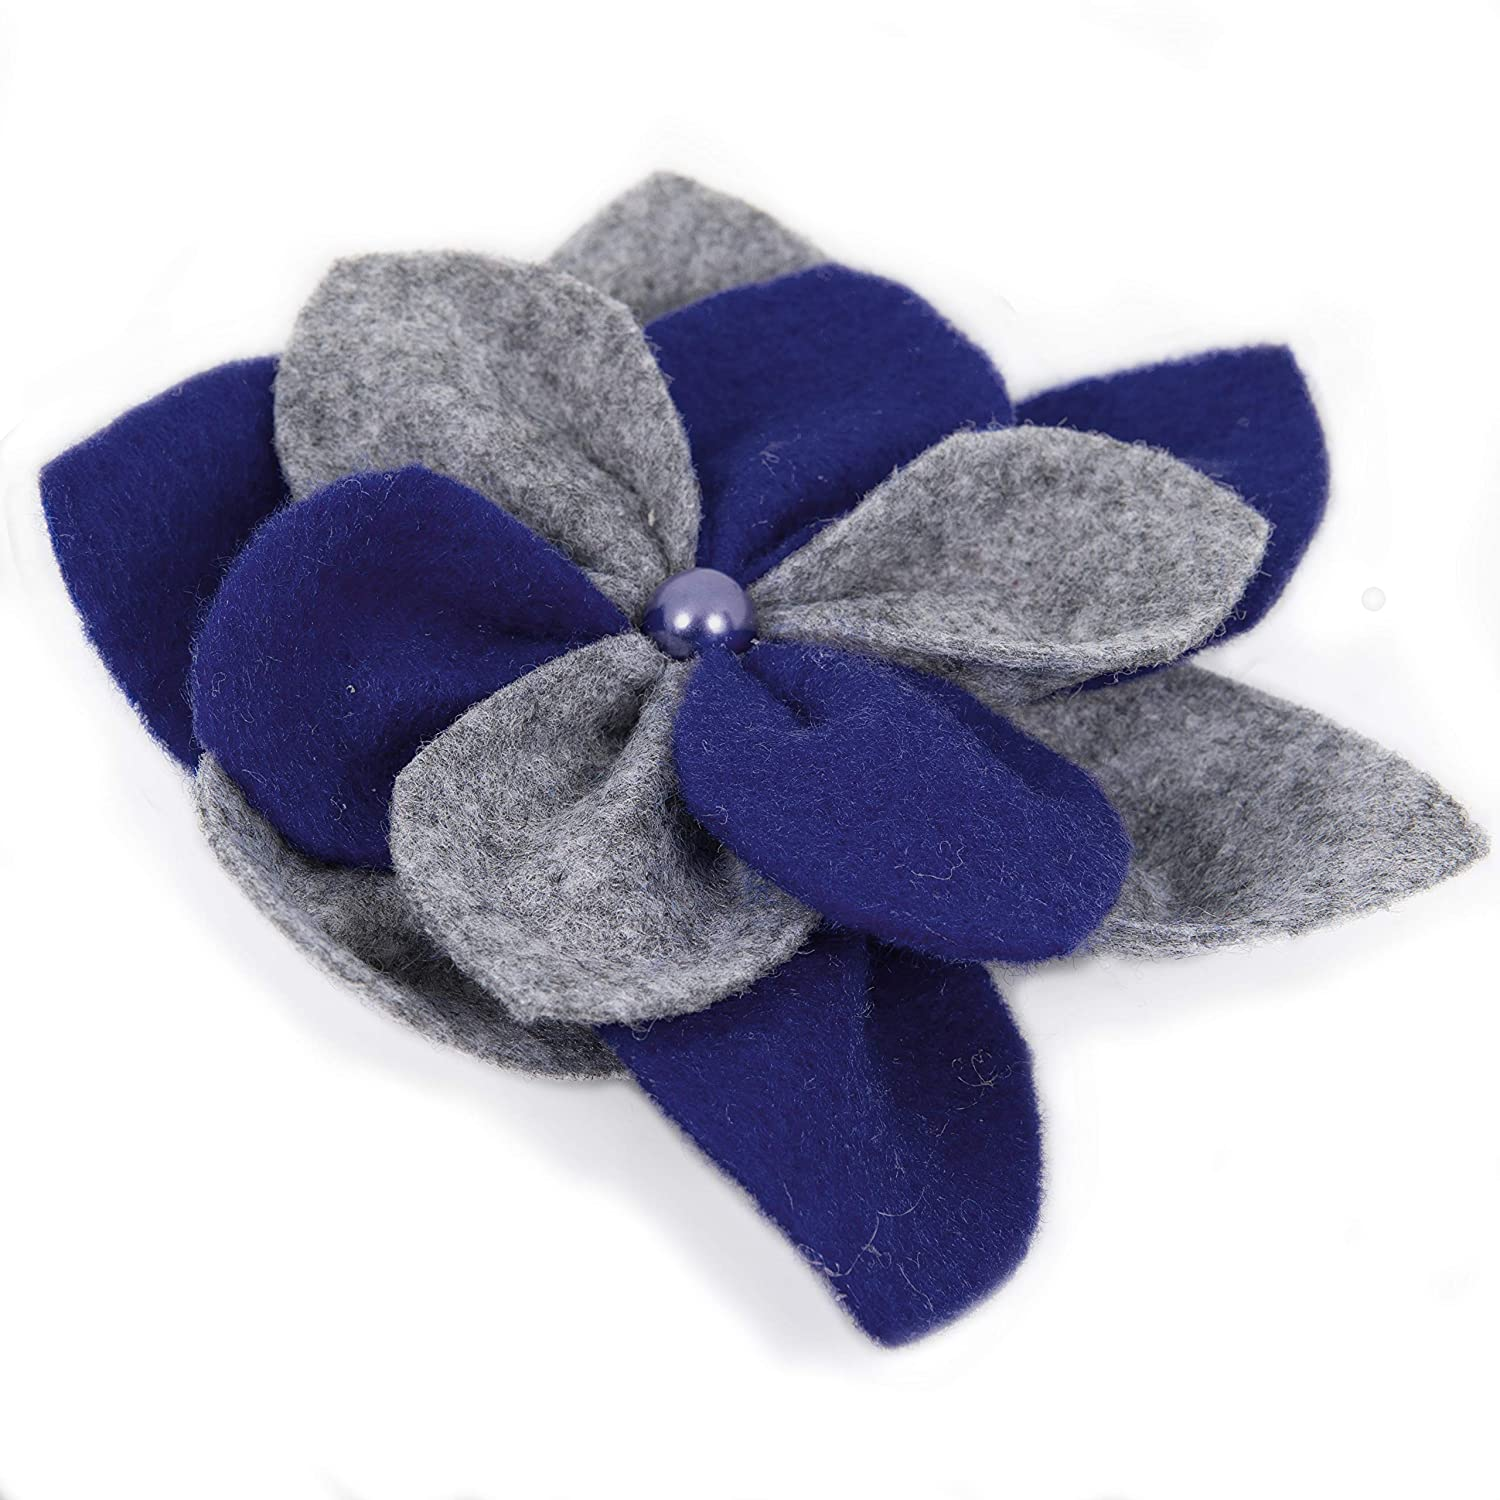 Hat or Scarf Wear it with Coat Bag Handmade Felt Accessories Jewellery for Woman OiA 10cm Flower Brooch Swater